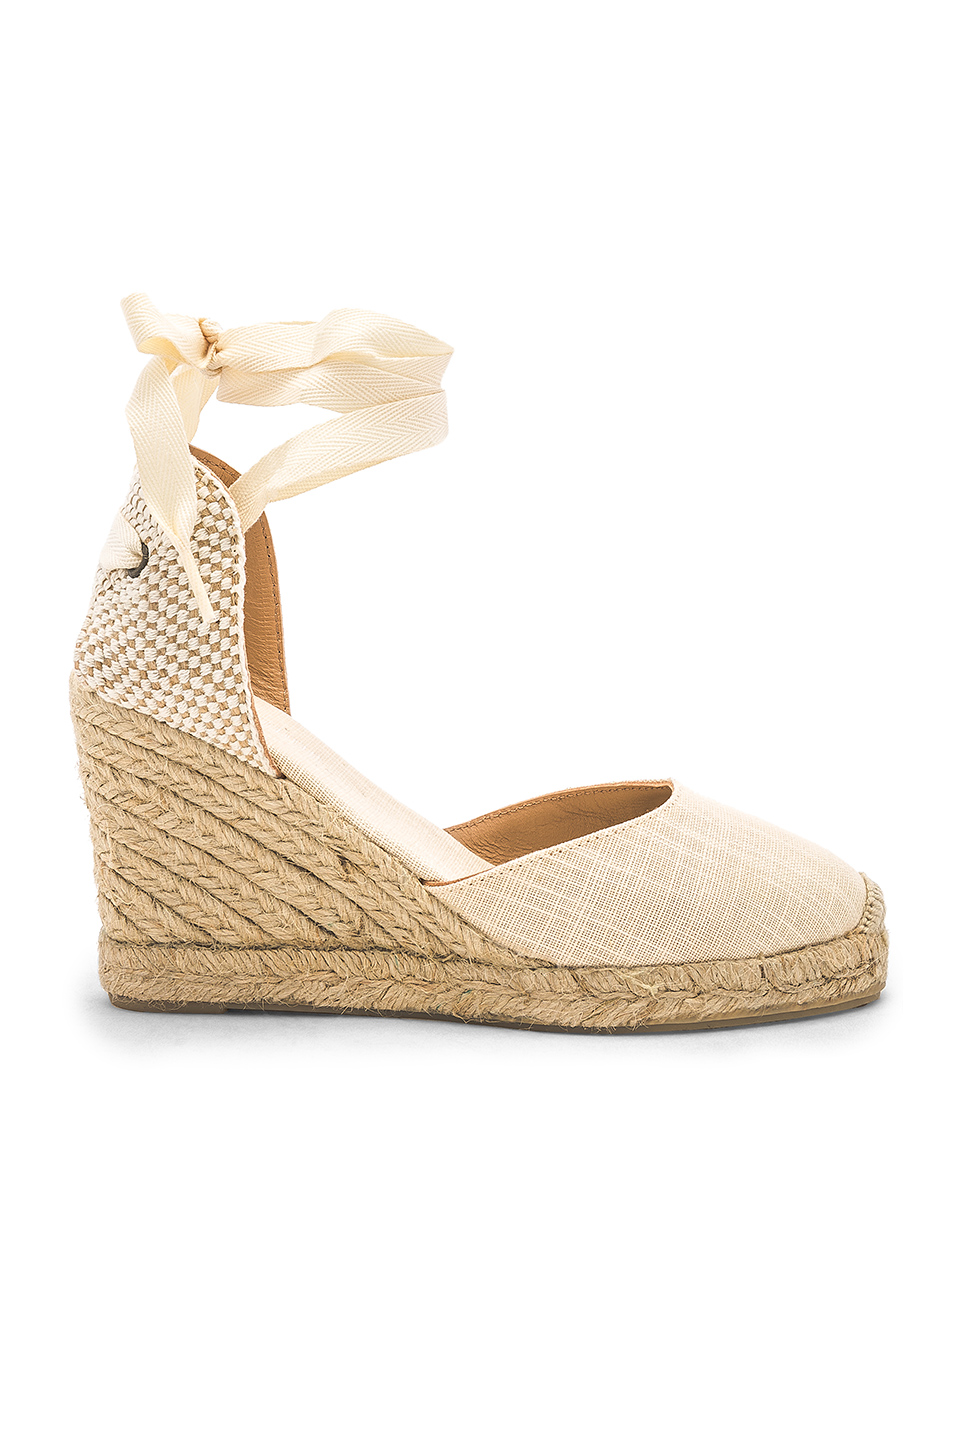 18d36b43183fd Buy Original Soludos Tall Wedge at Indonesia